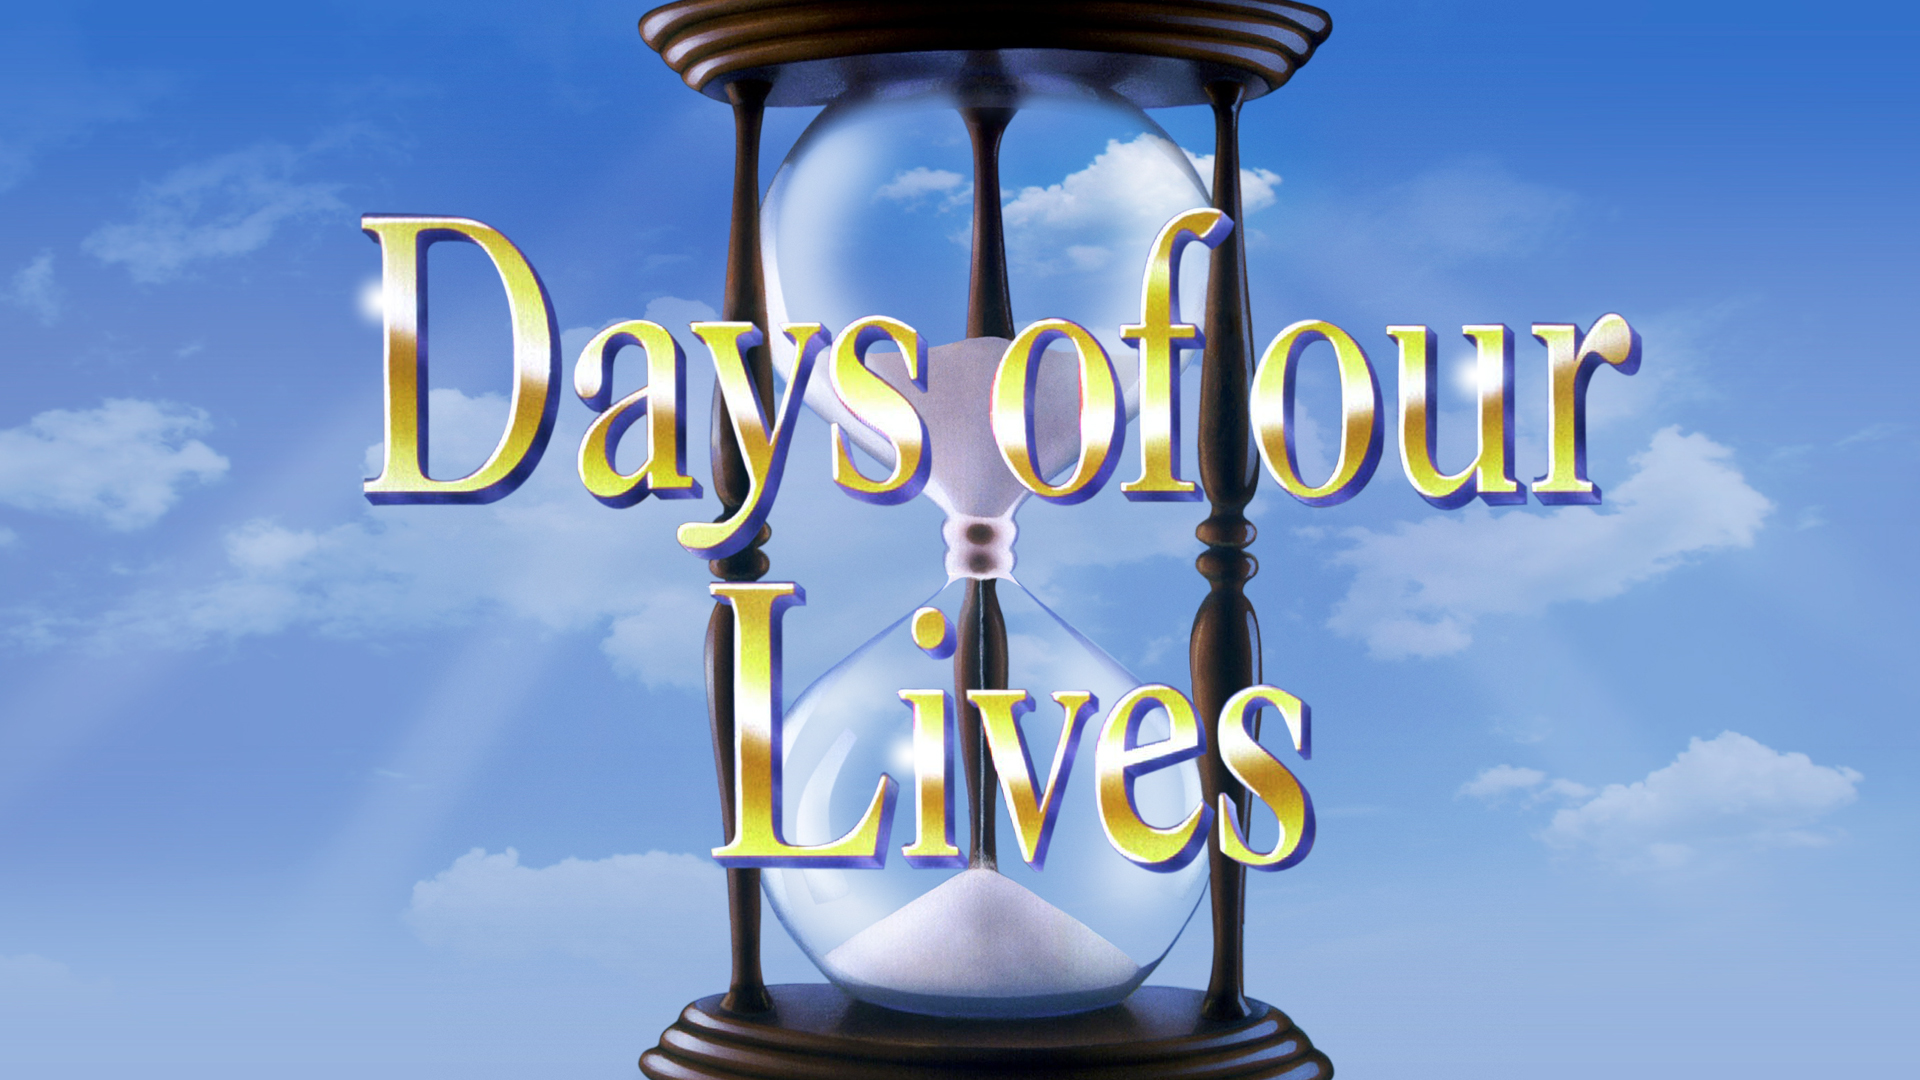 b83519eb8 Watch Days of our Lives Episodes - NBC.com